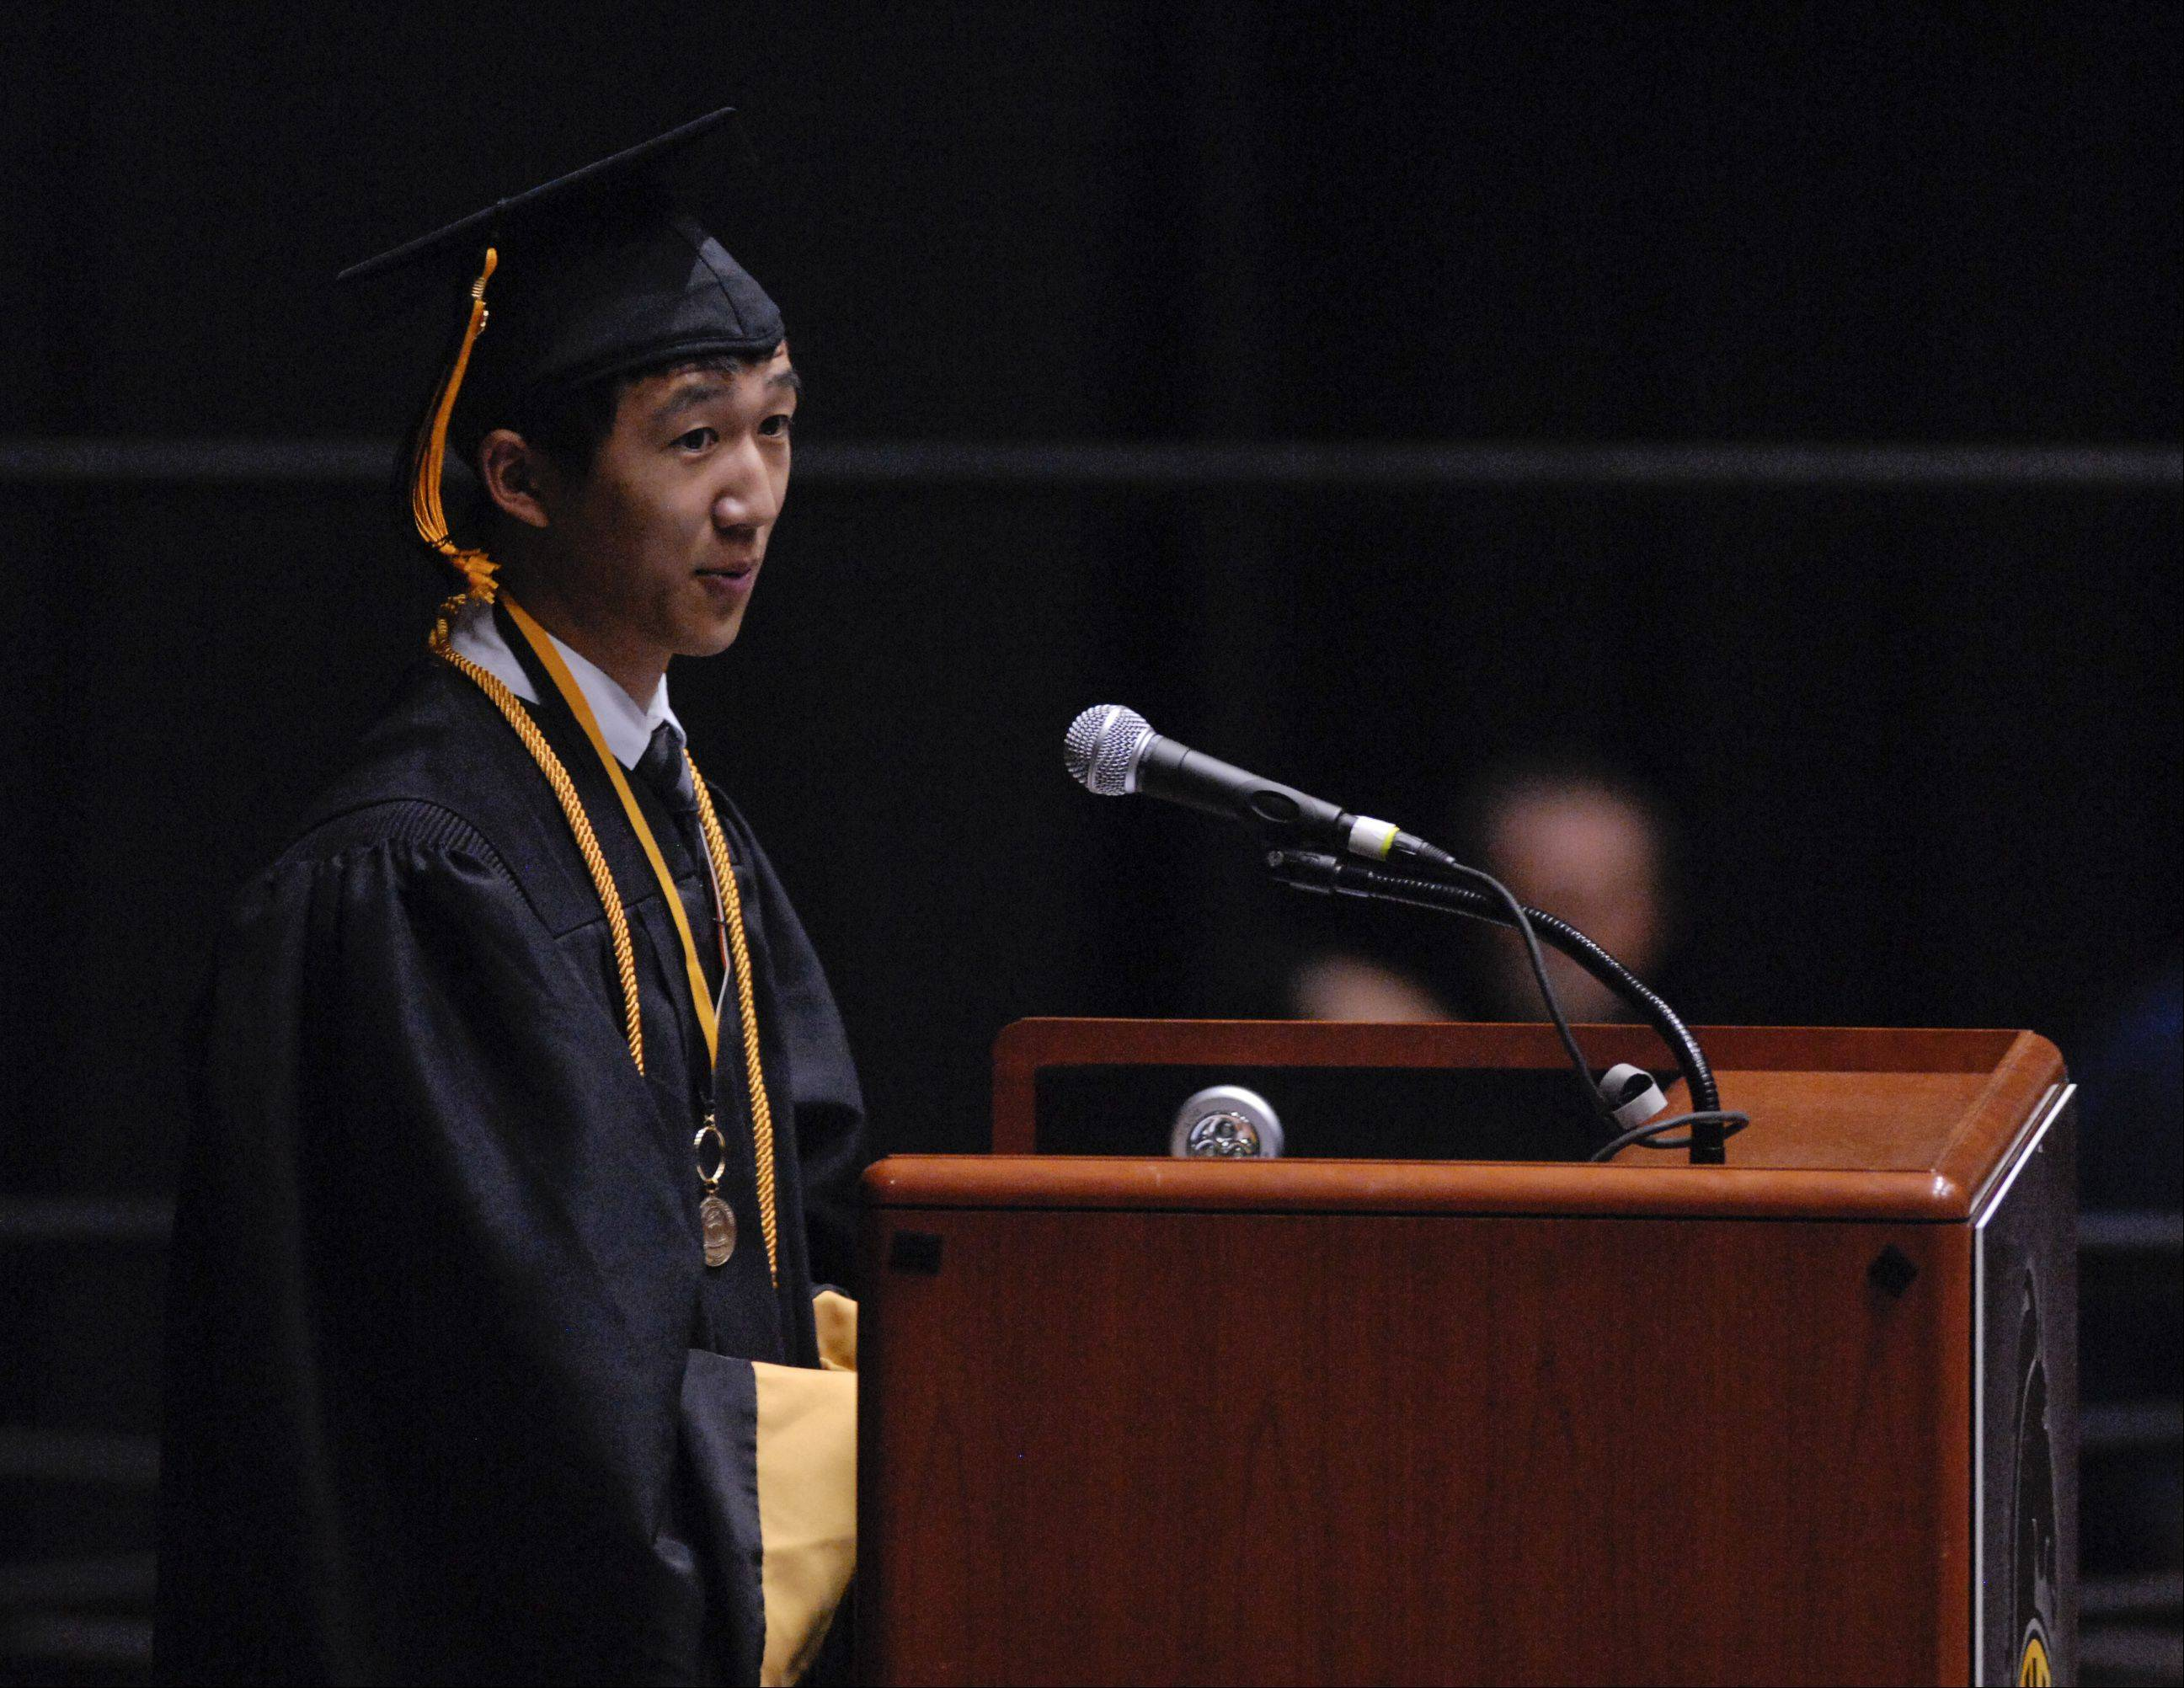 Eric Zhang gives the Senior Academic Farewell Address during the Metea Valley High School graduation on Sunday, May 26 at the NIU Convocation Center in DeKalb.